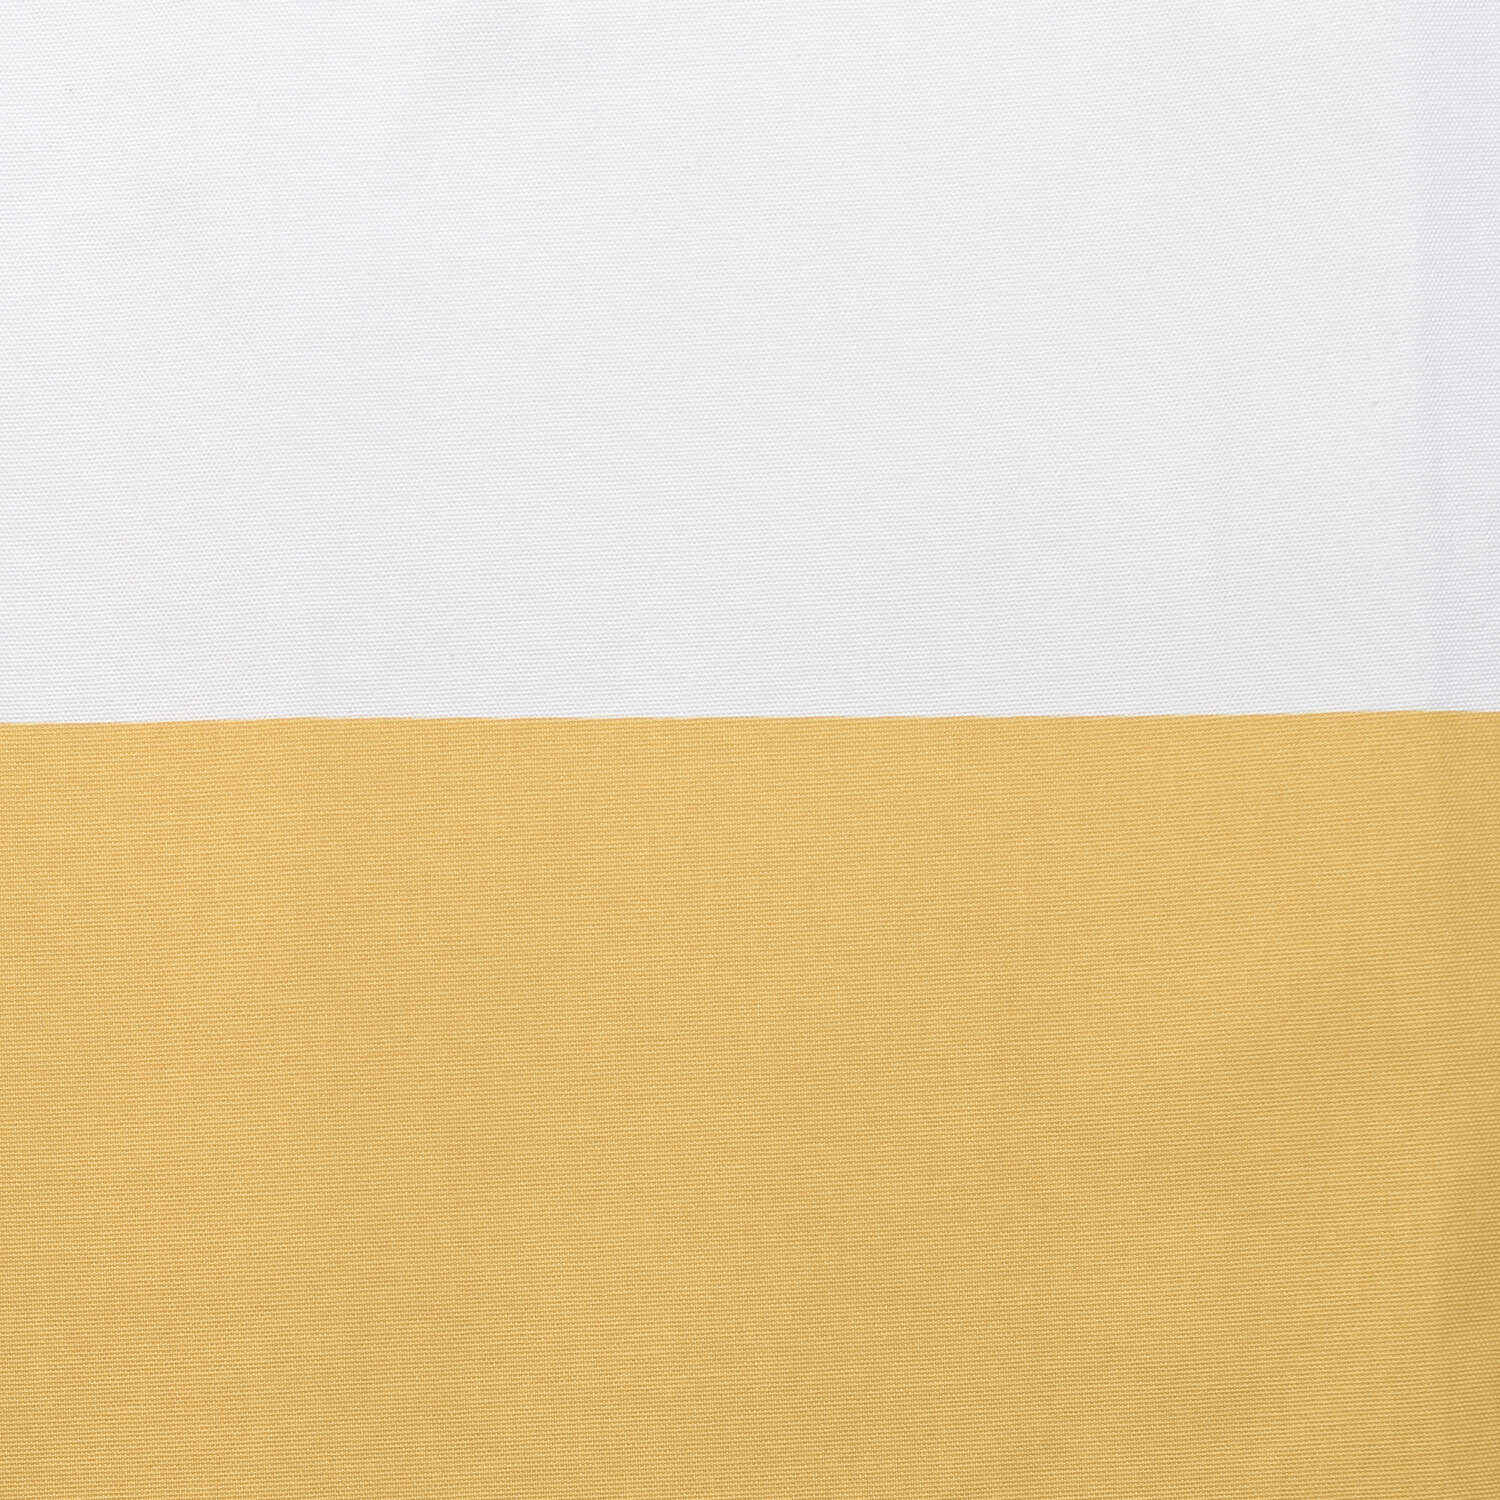 Quince Yellow & Off White Horizontal Stripe Swatch